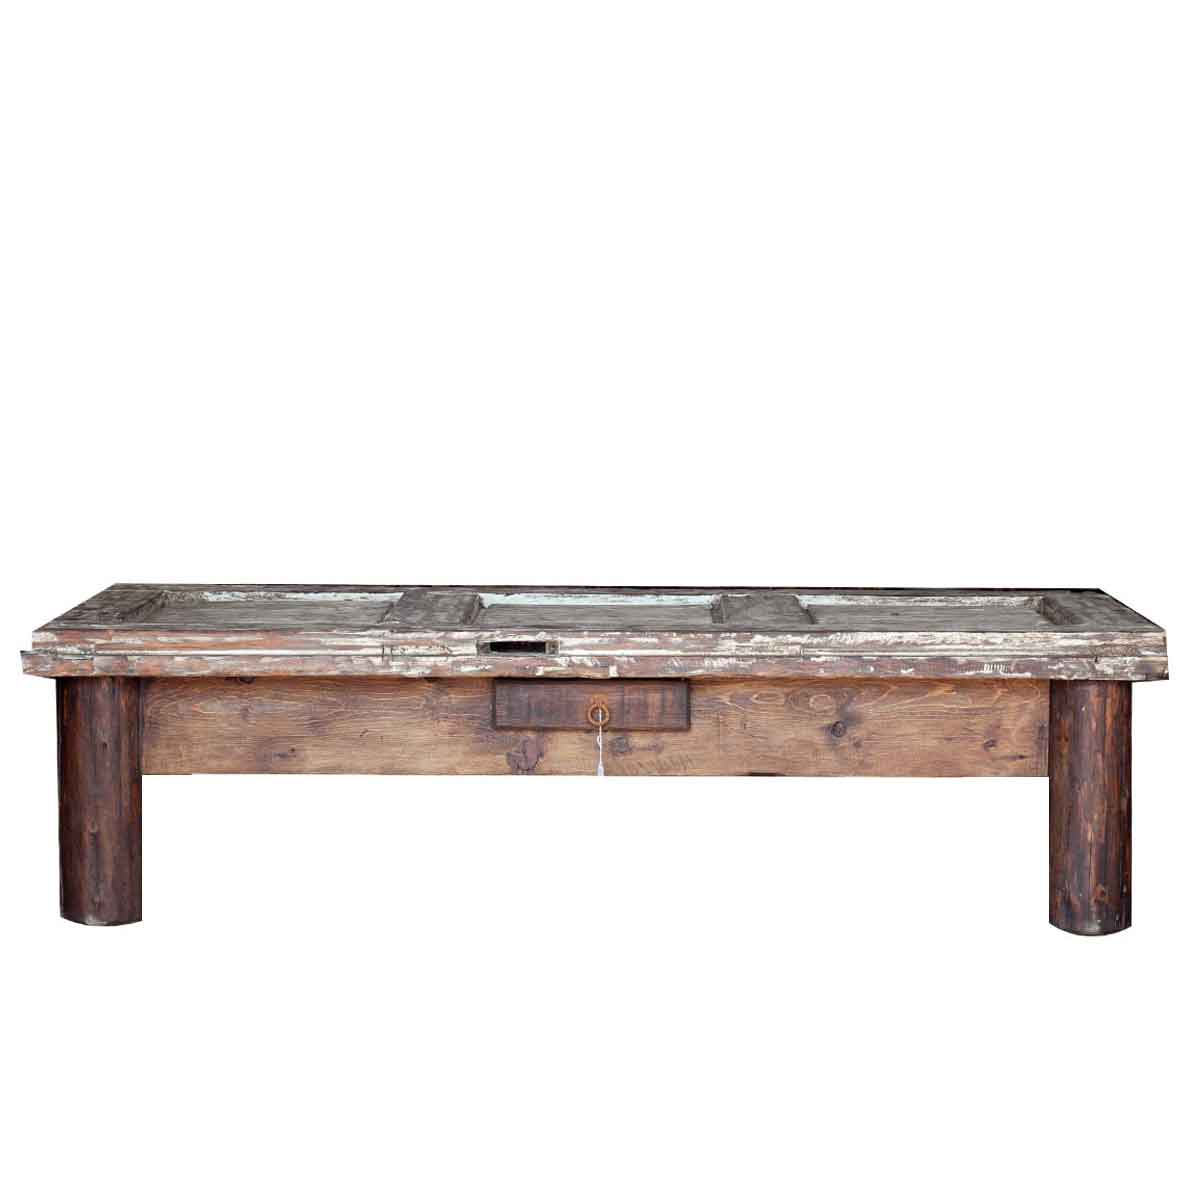 Buy beautiful reclaimed barn wood coffee table online Coffee tables online